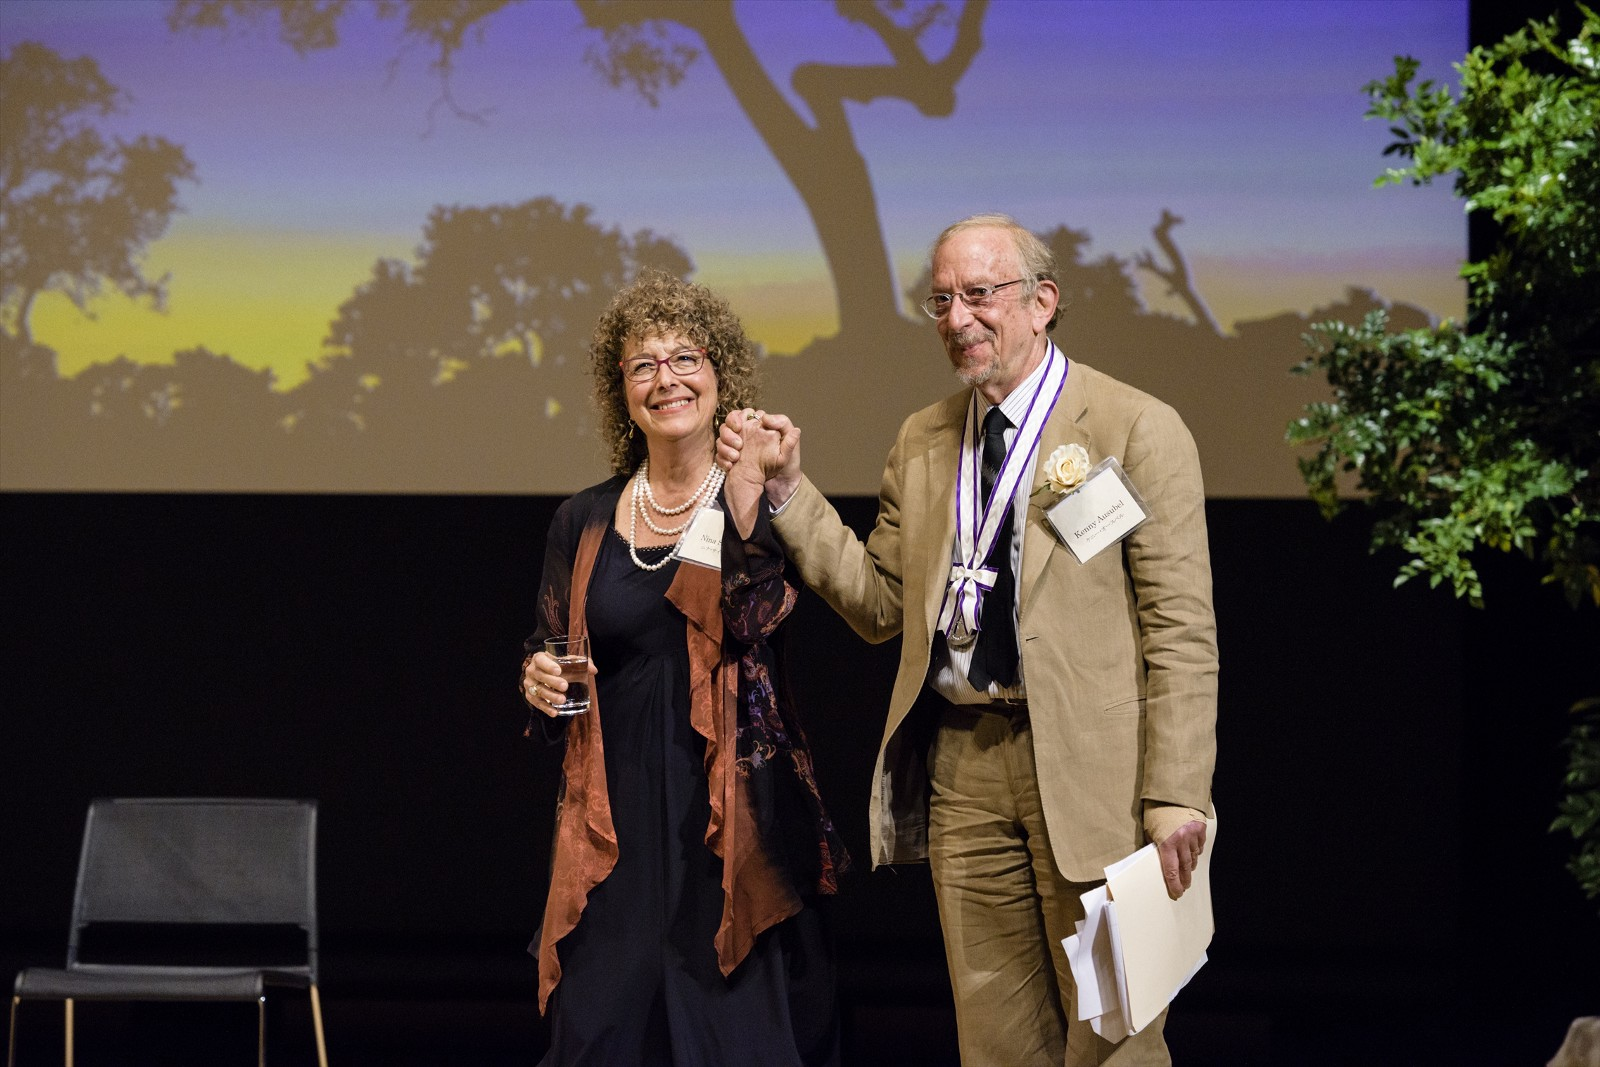 Bioneers Co-Founders Recognized as Trailblazers in Restoring the Earth, Communities: Kenny Ausubel and Nina Simons Receive the Goi Peace Award